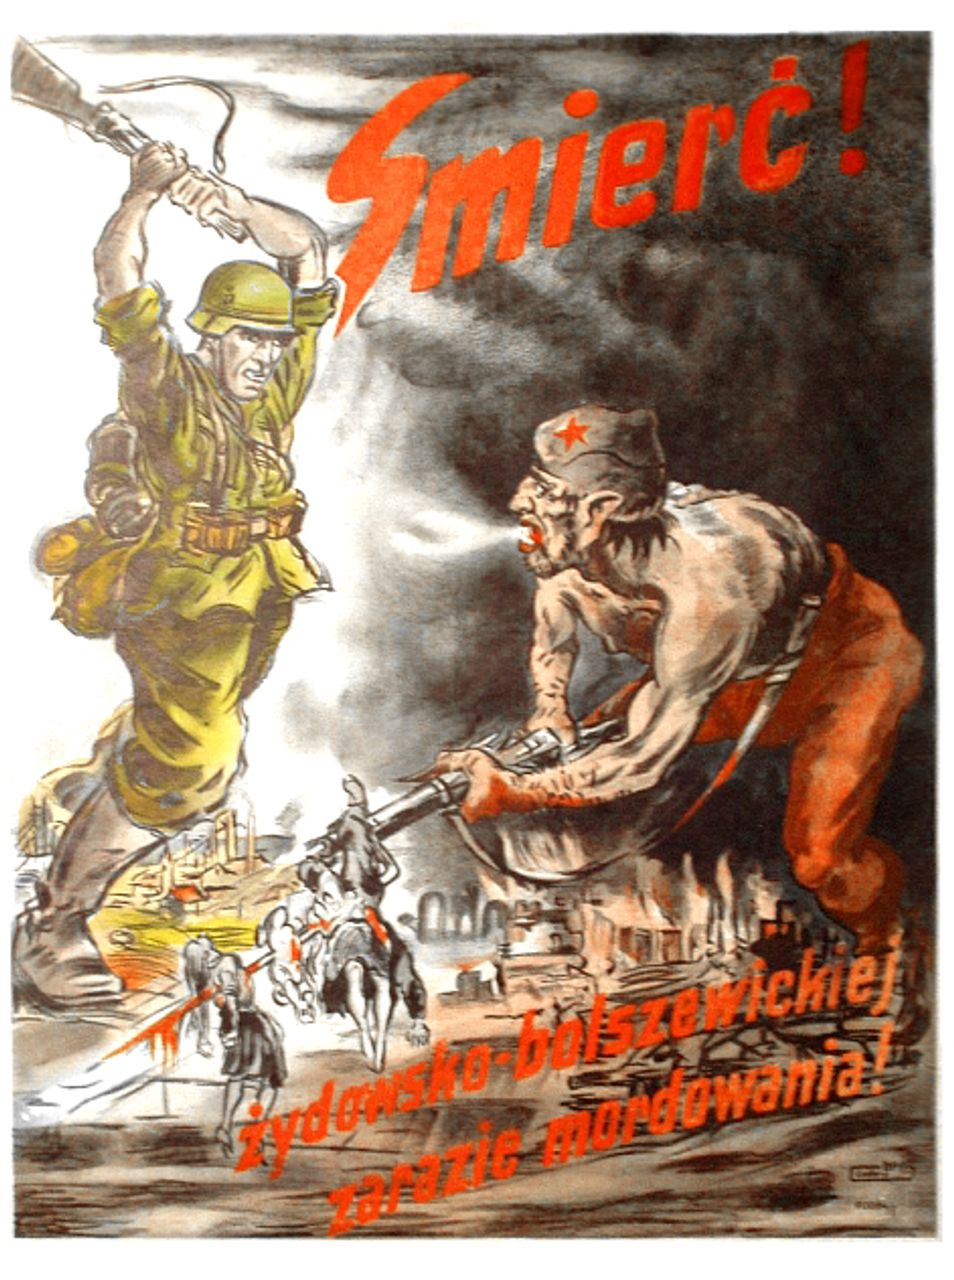 A Nazi-era anti-Semitic propaganda poster in Polish. It says: Death! To the Jewish-Bolshevik pestilence of murdering!